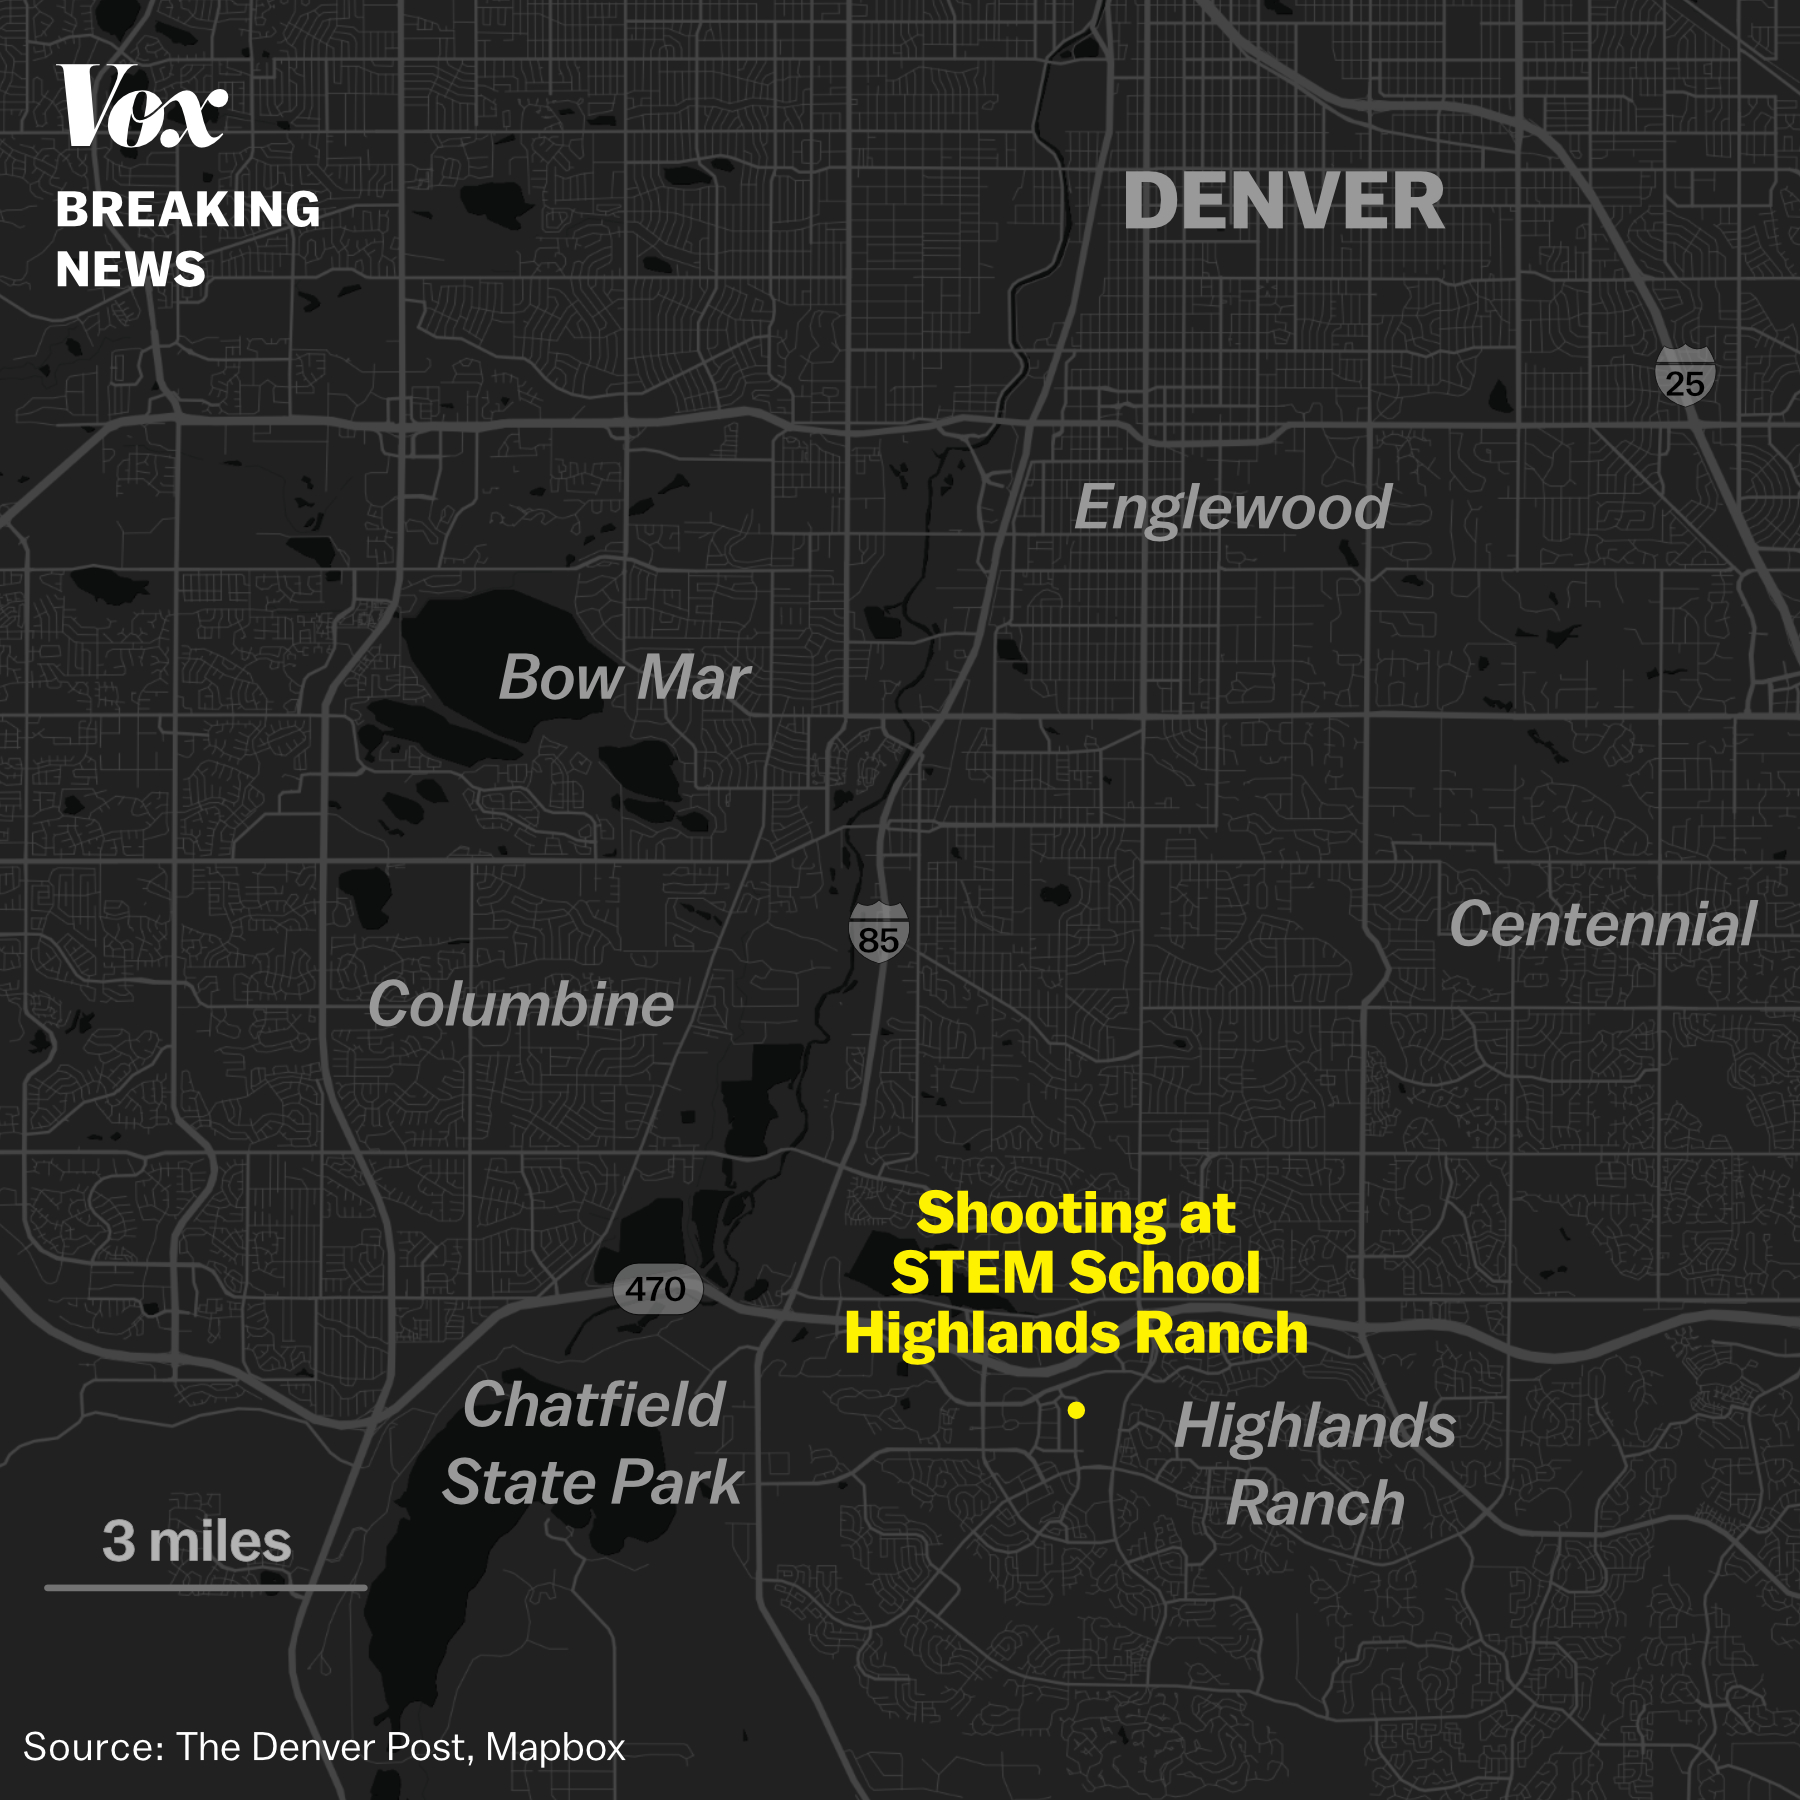 Flipboard: Report: Police Identify Suspect In Colorado